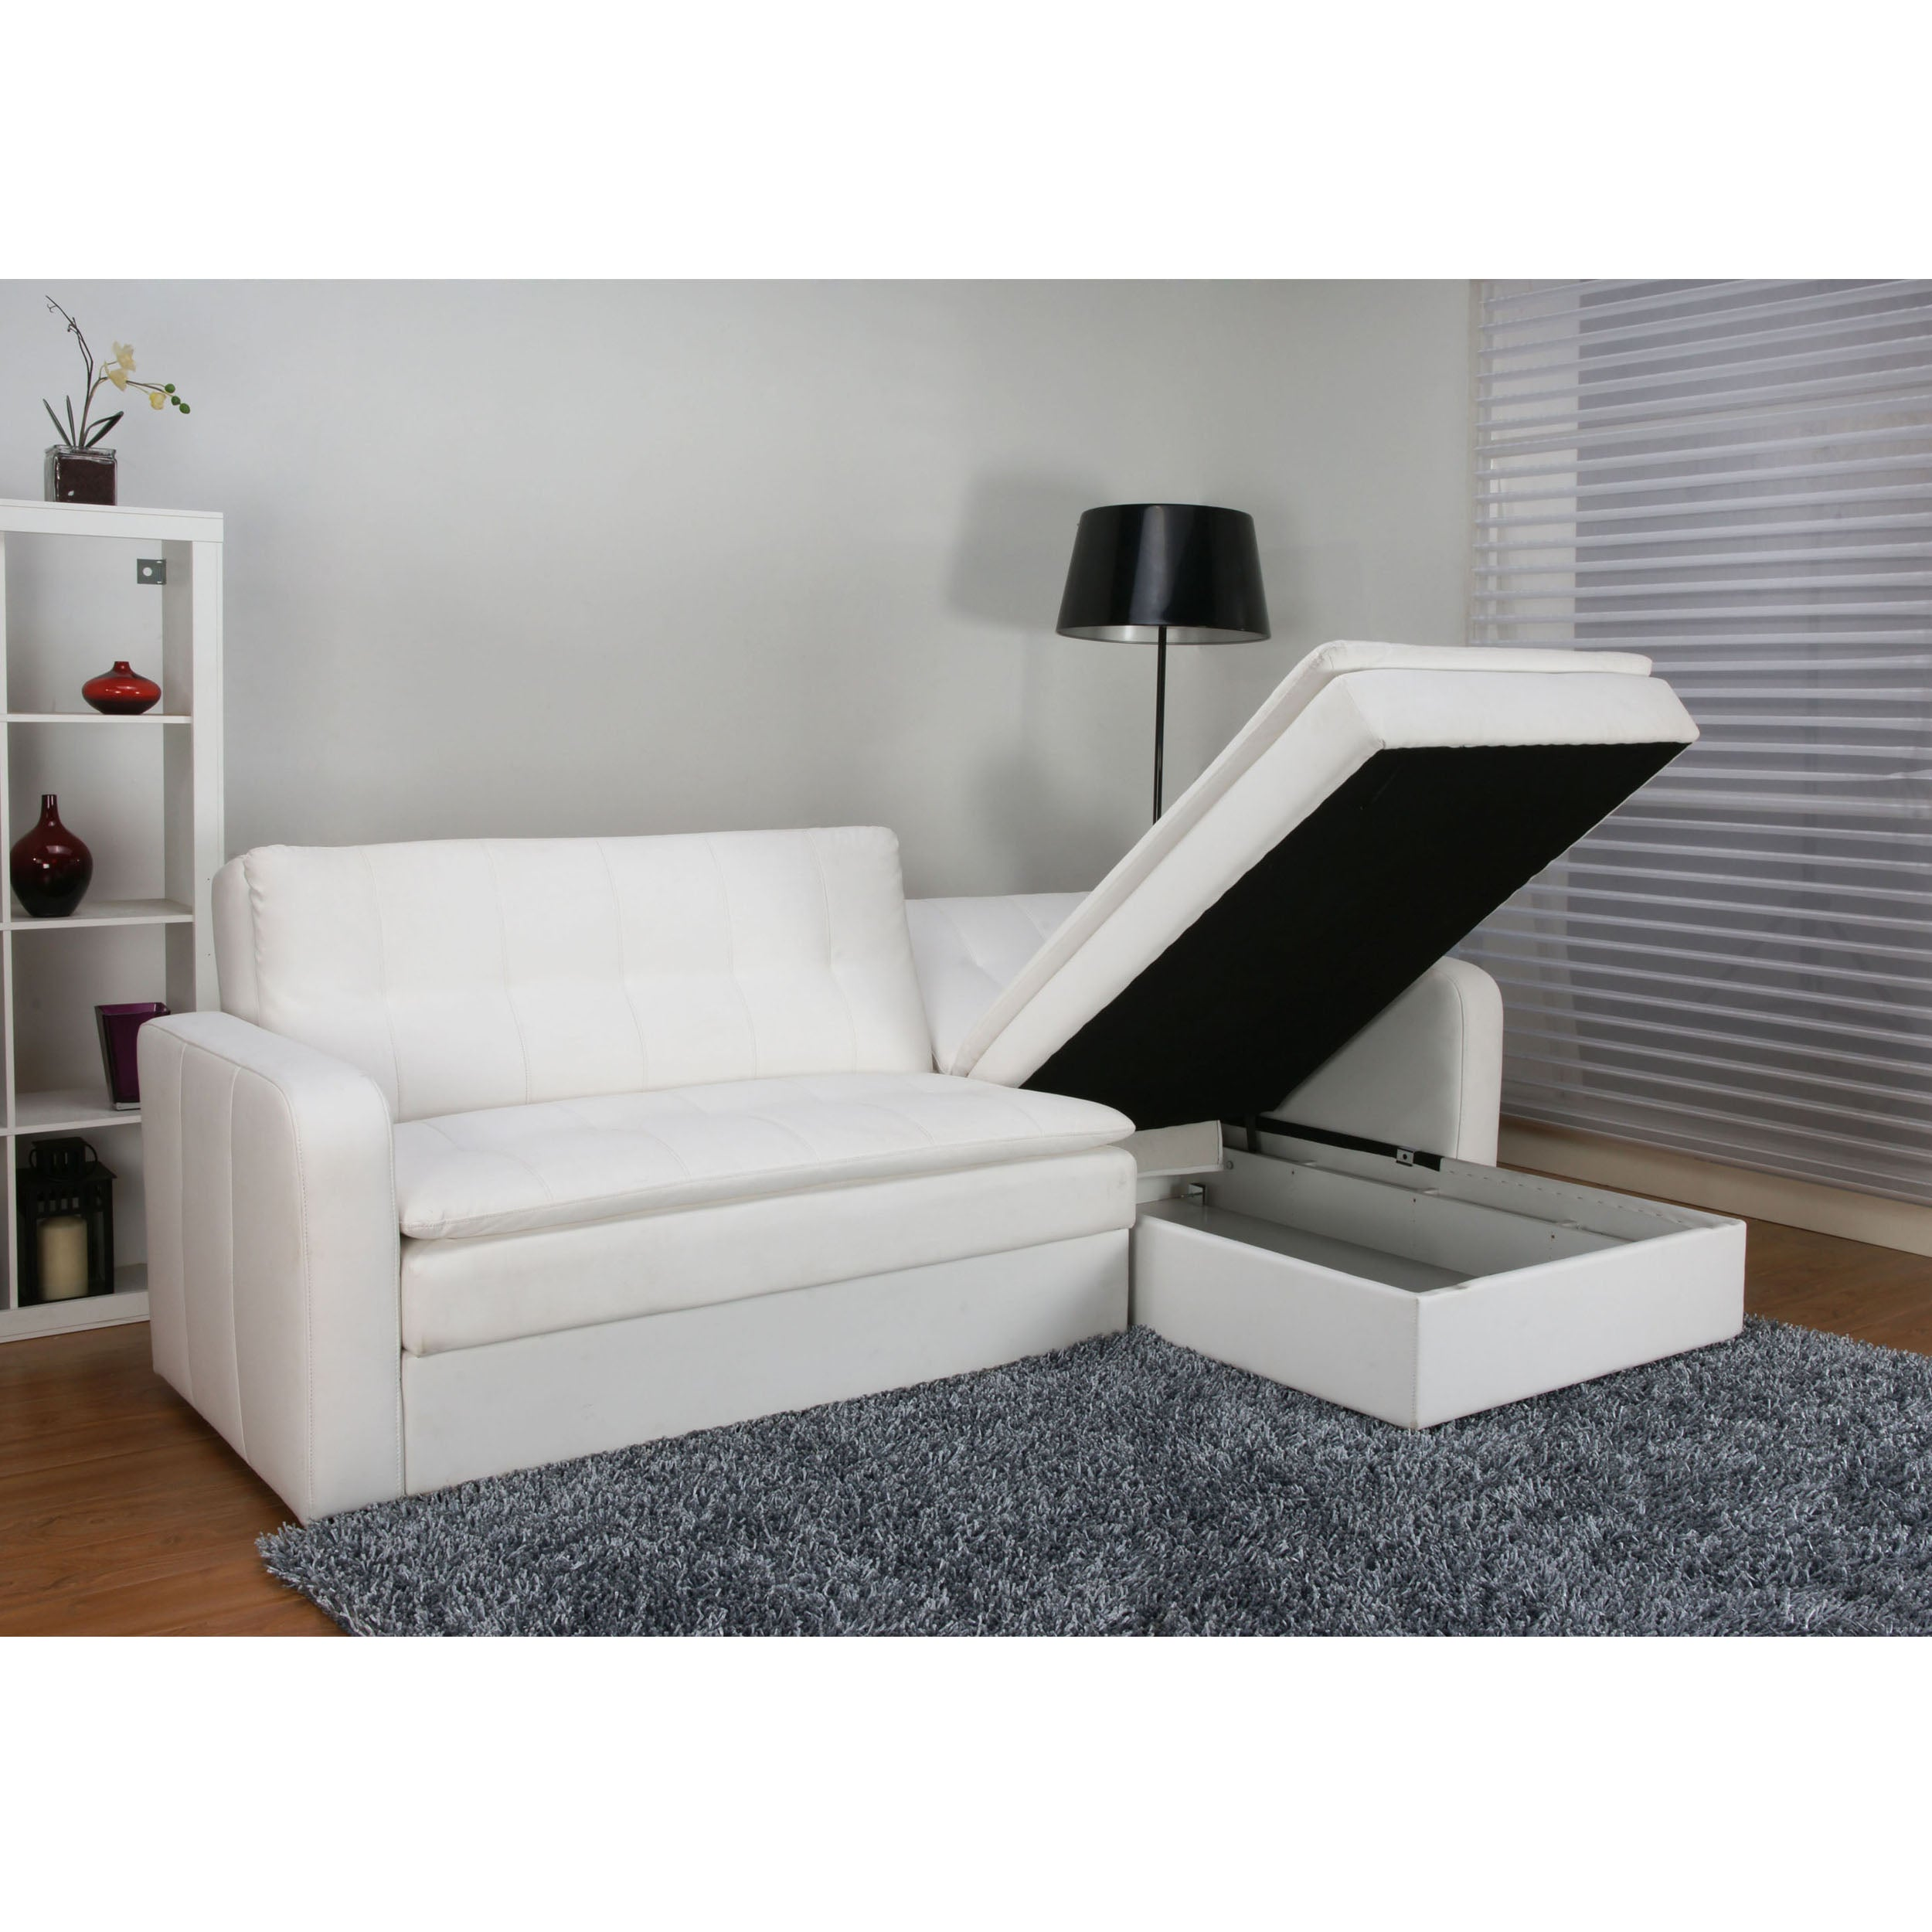 Shop Denver White Double Cushion Storage Sectional Sofa Bed And Ottoman Set    Free Shipping Today   Overstock.com   6739414